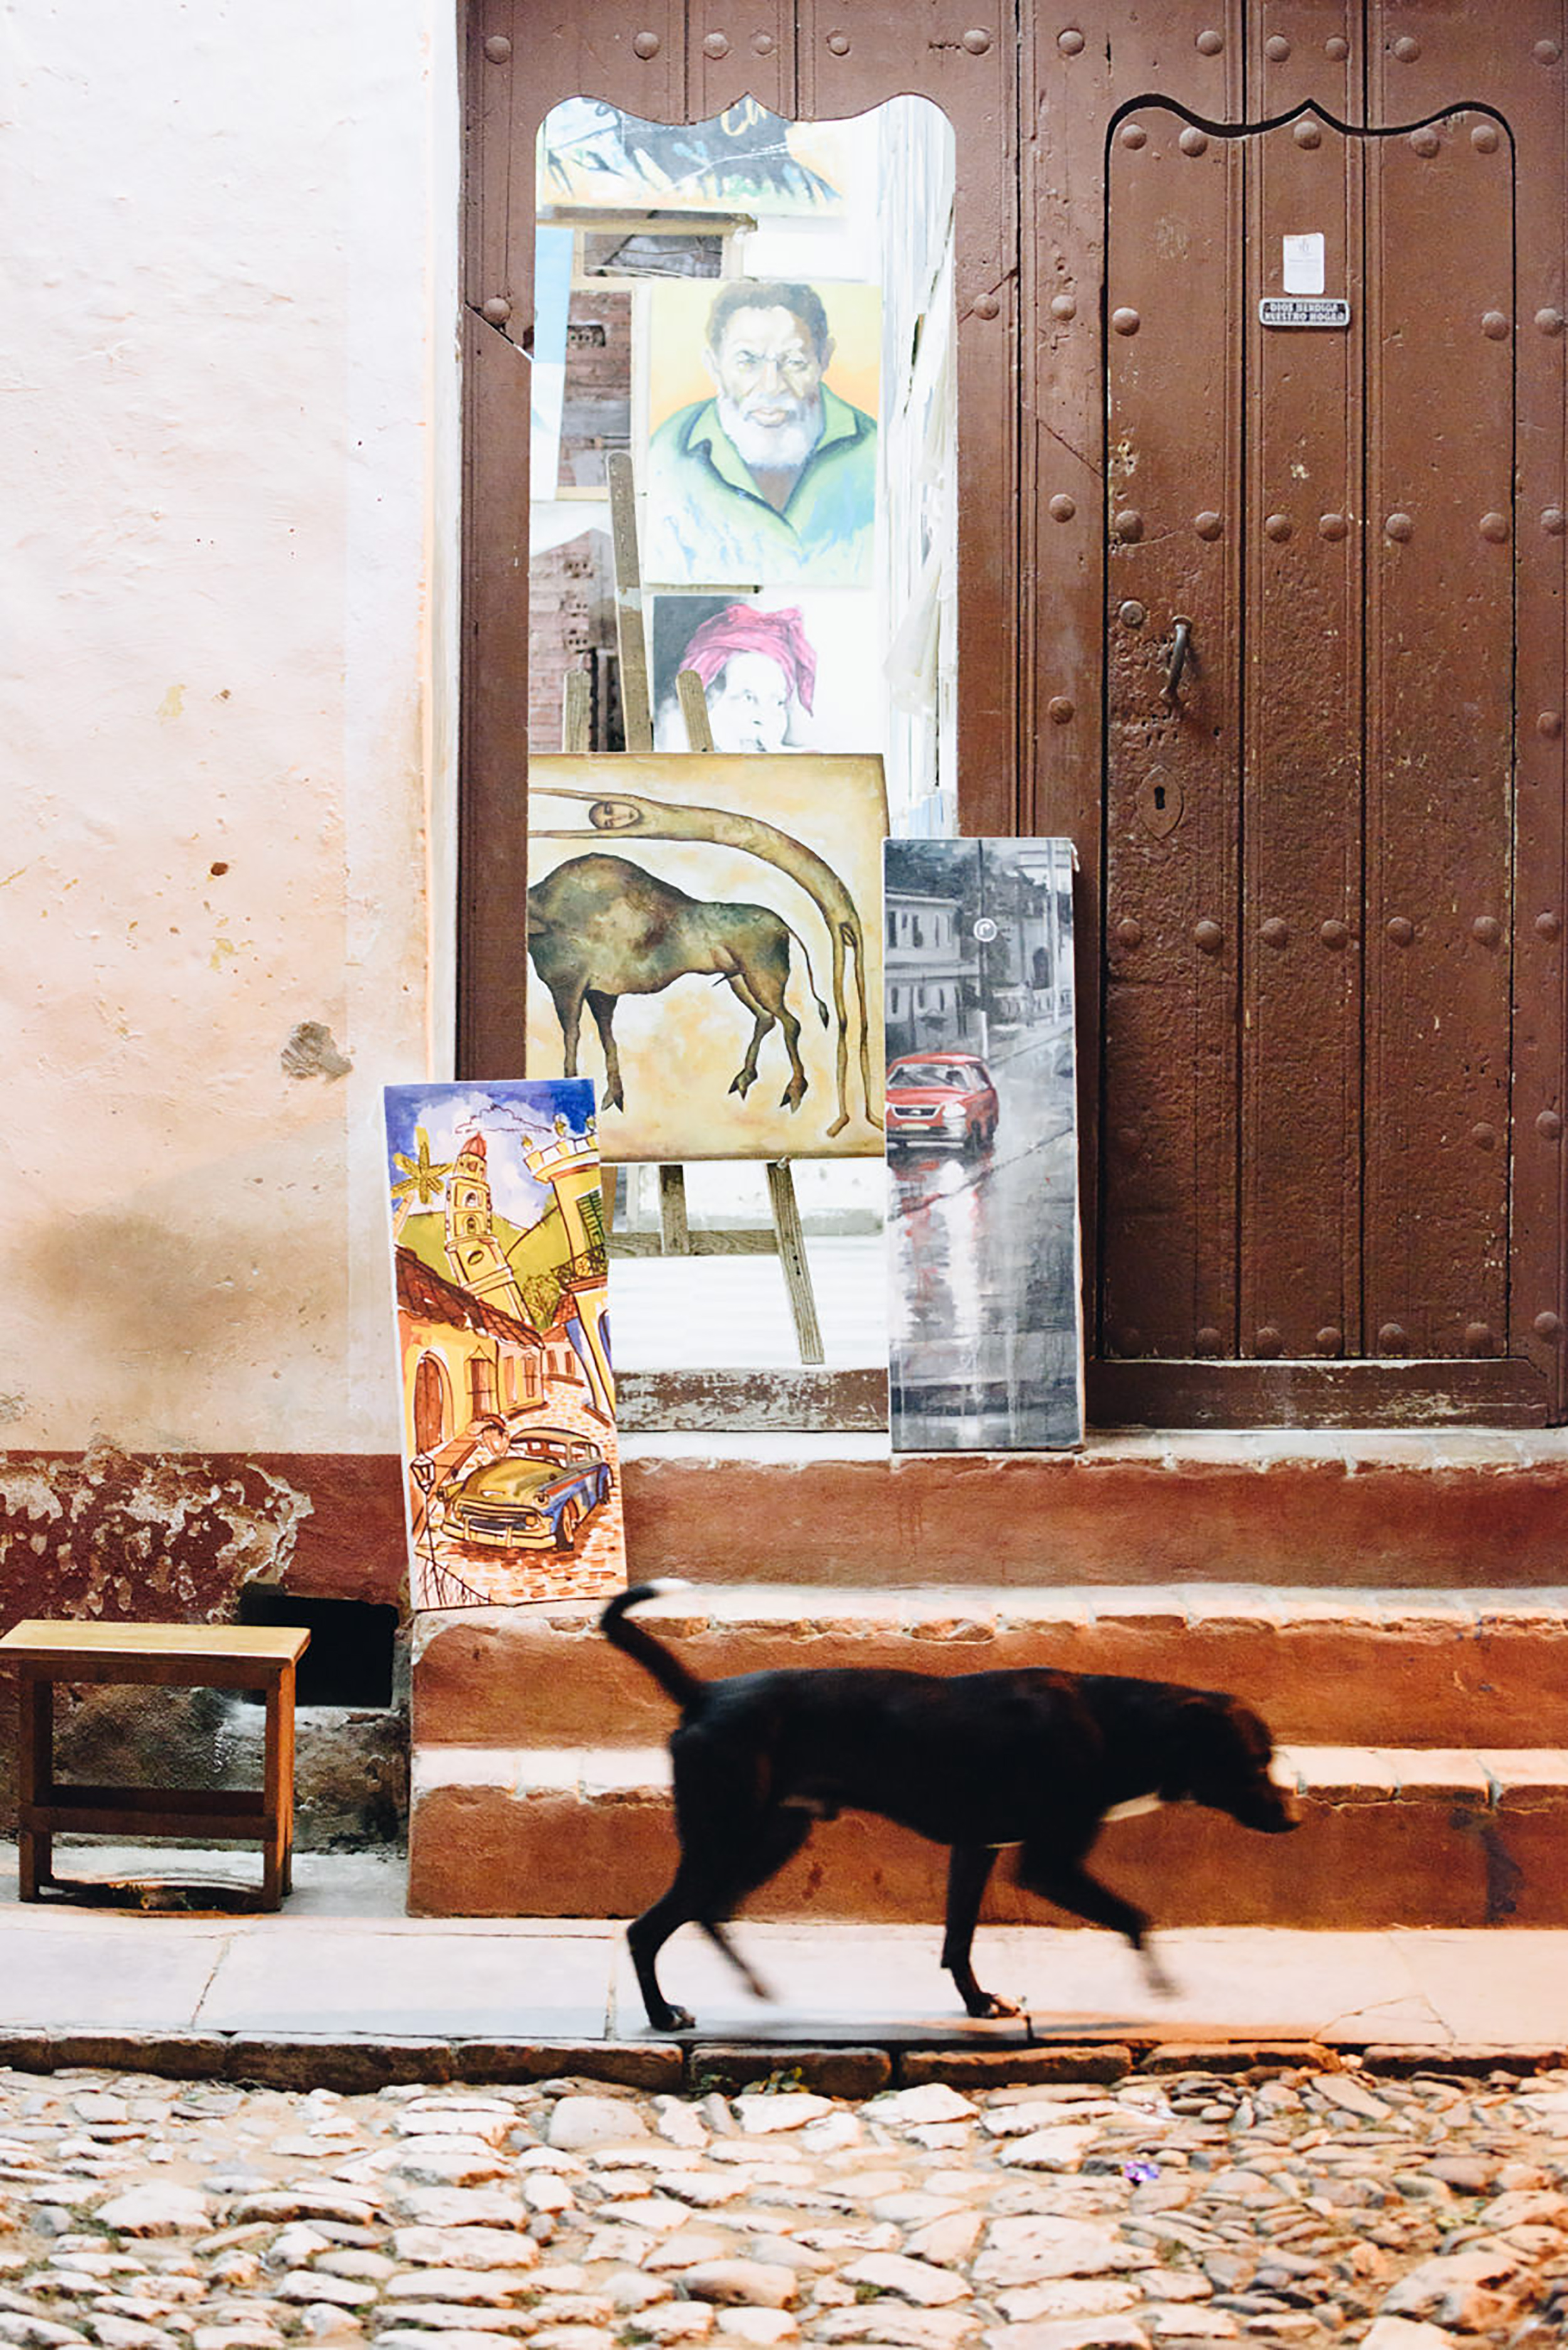 Dog passes by art work on sidewalk at night in Cuba